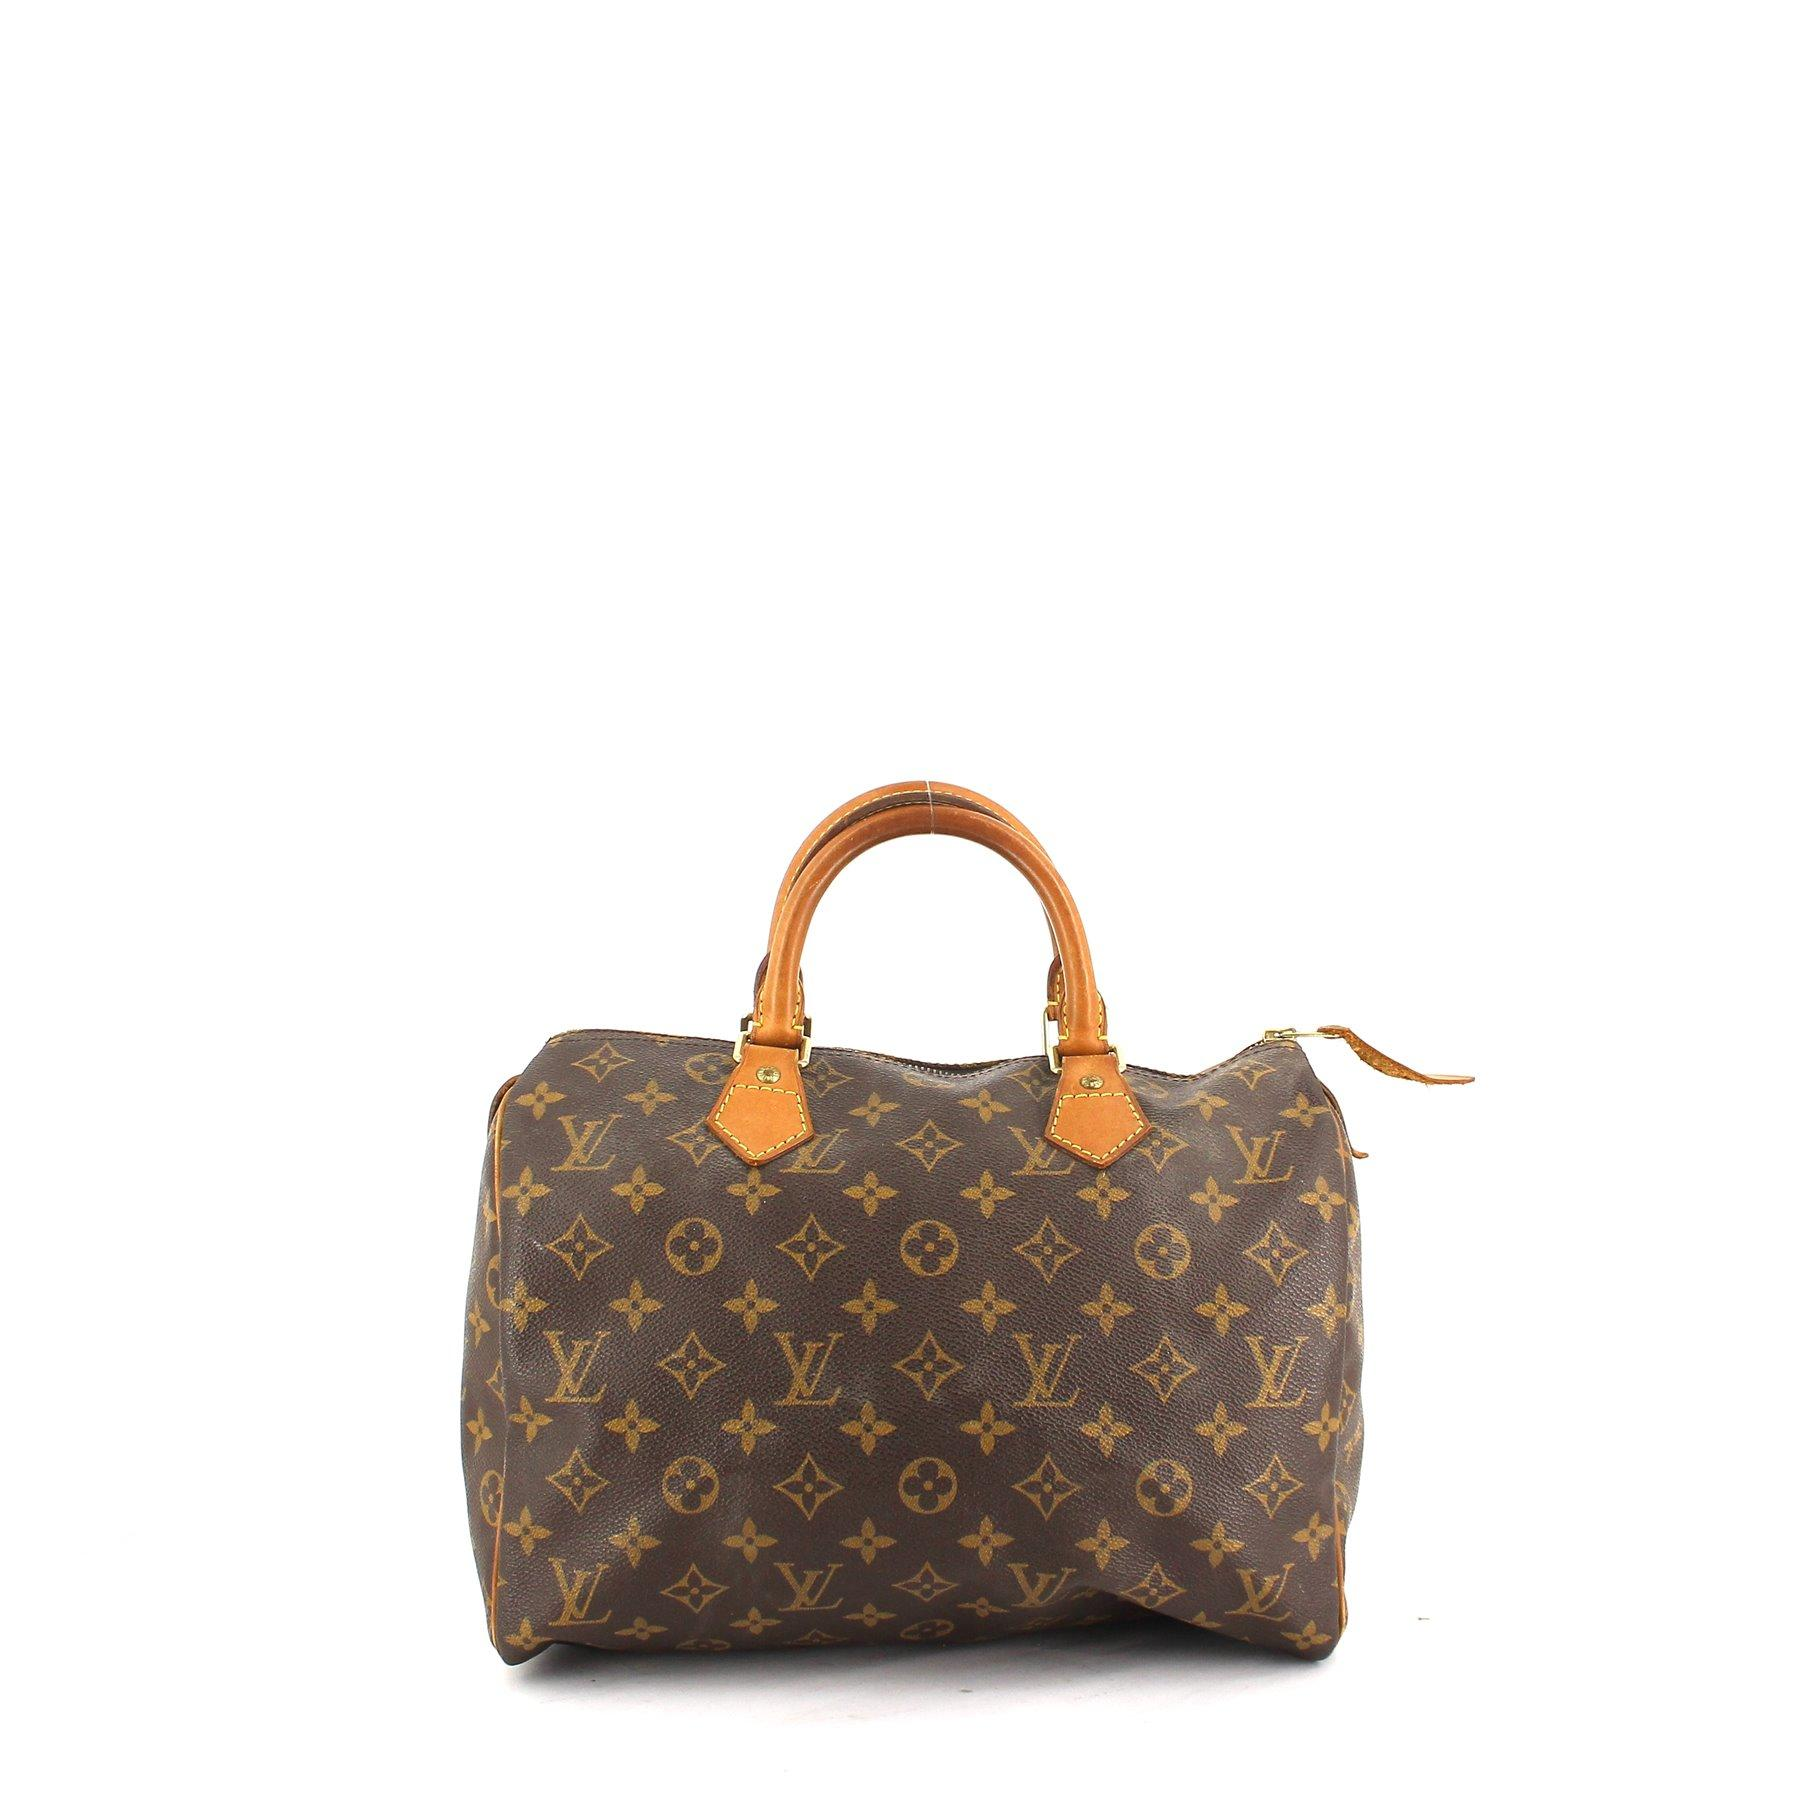 Le chic sporty du Speedy de Louis Vuitton - Madame Figaro f45083b49a2